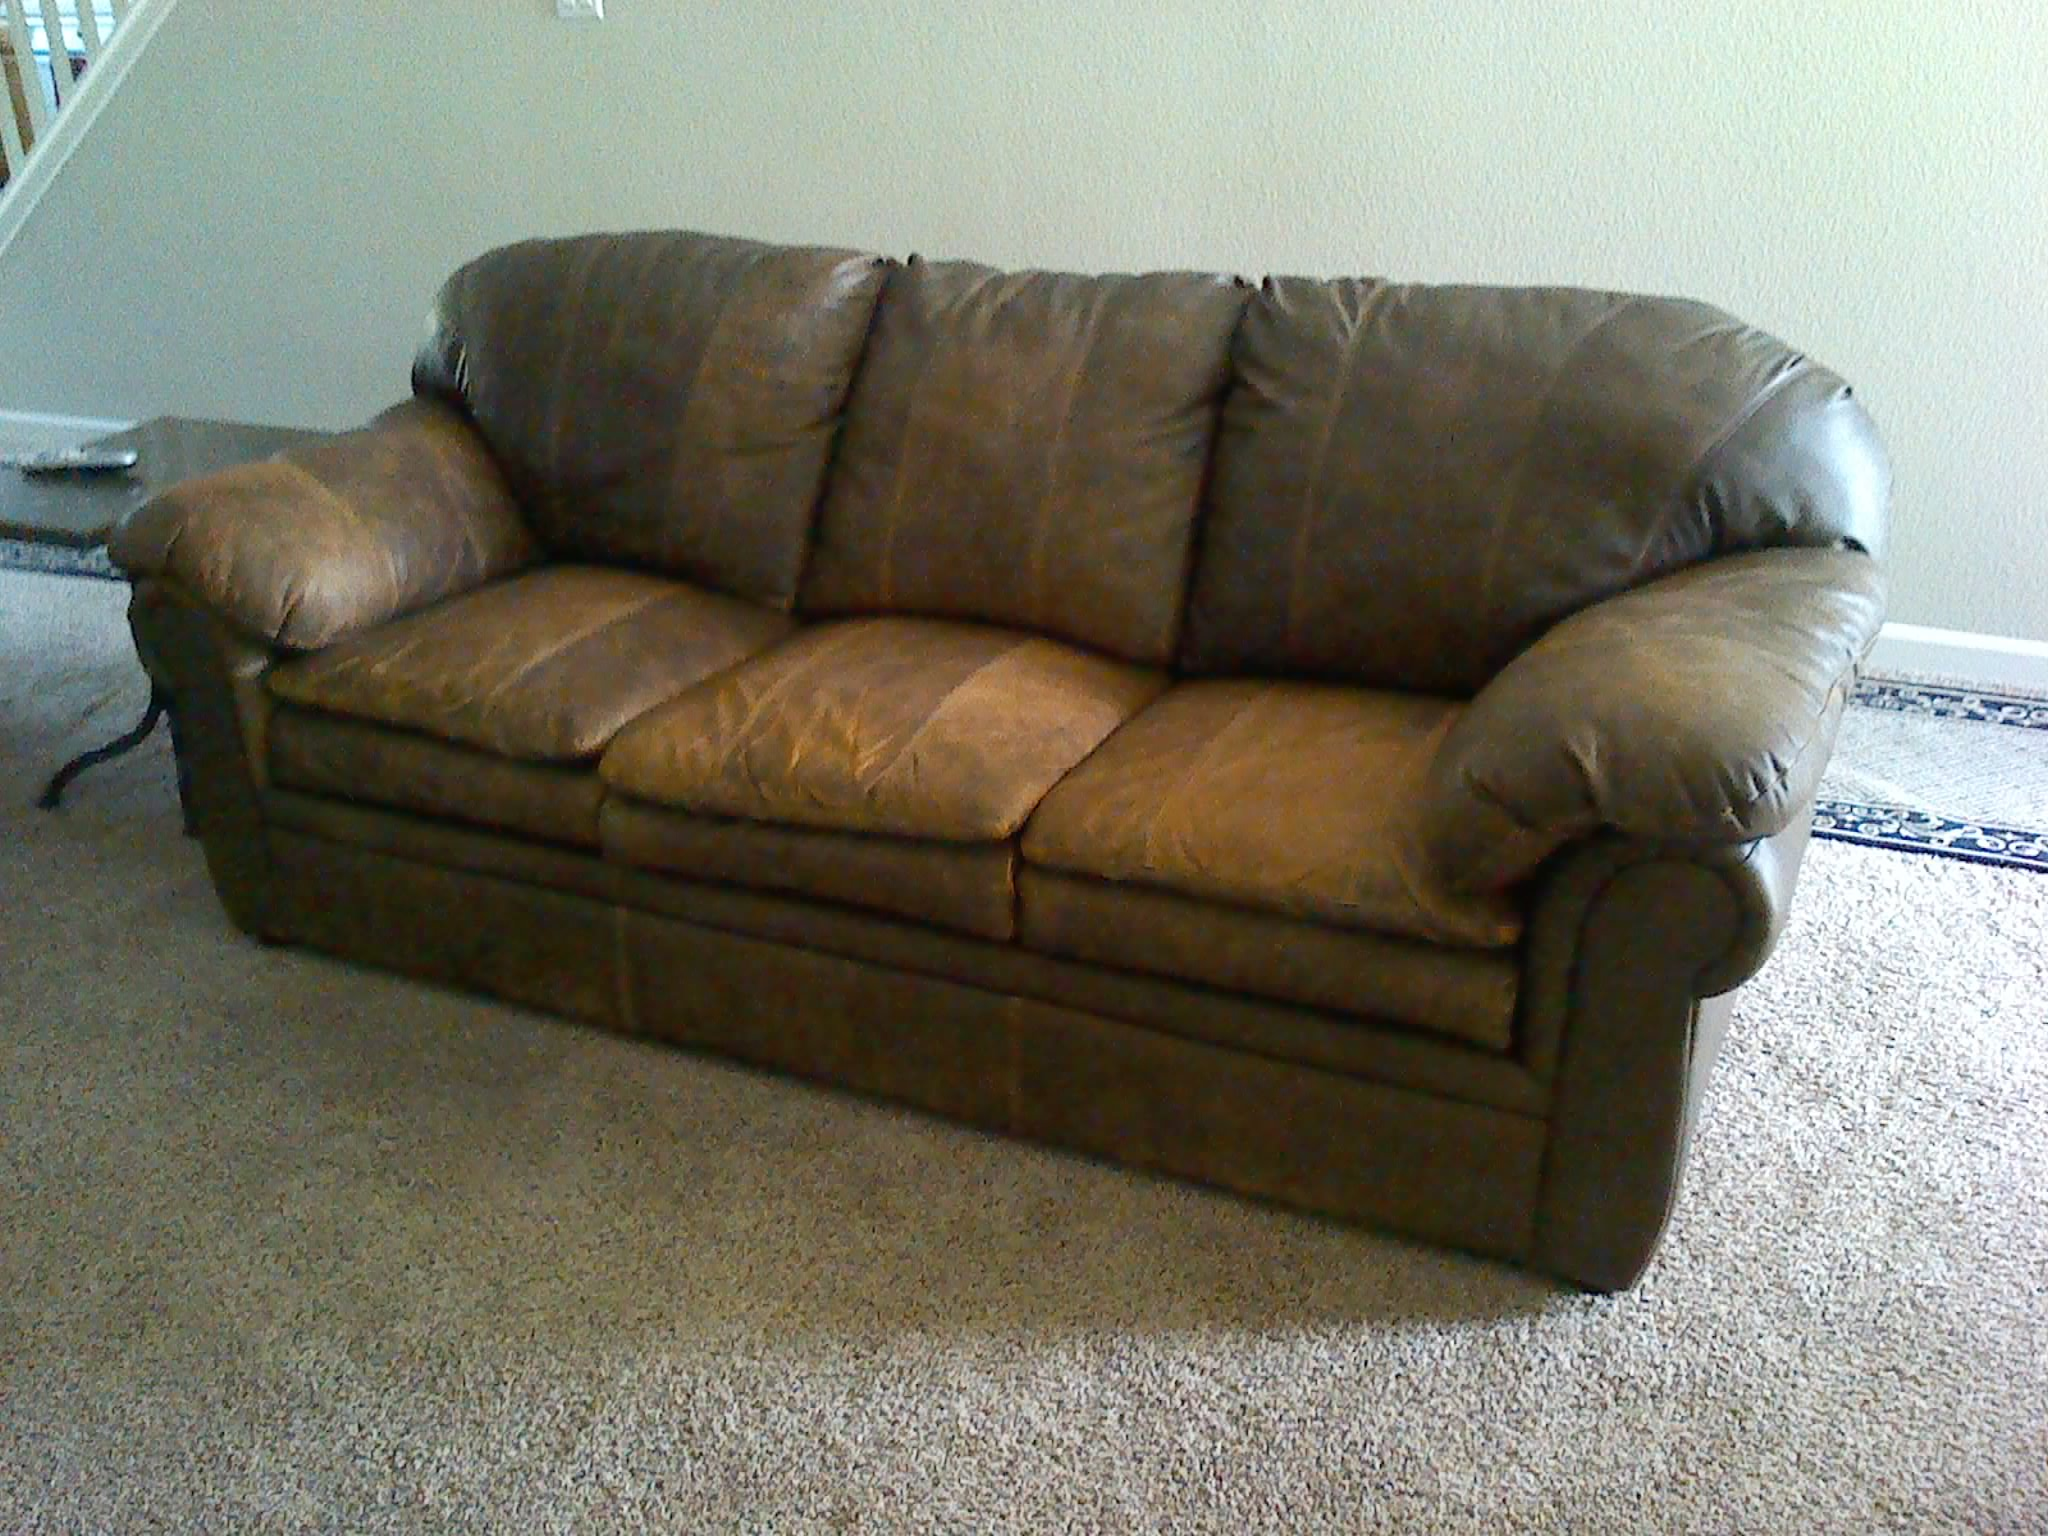 """Conditioning """"Bomber Jacket Look"""" Leather Couch & Chair"""